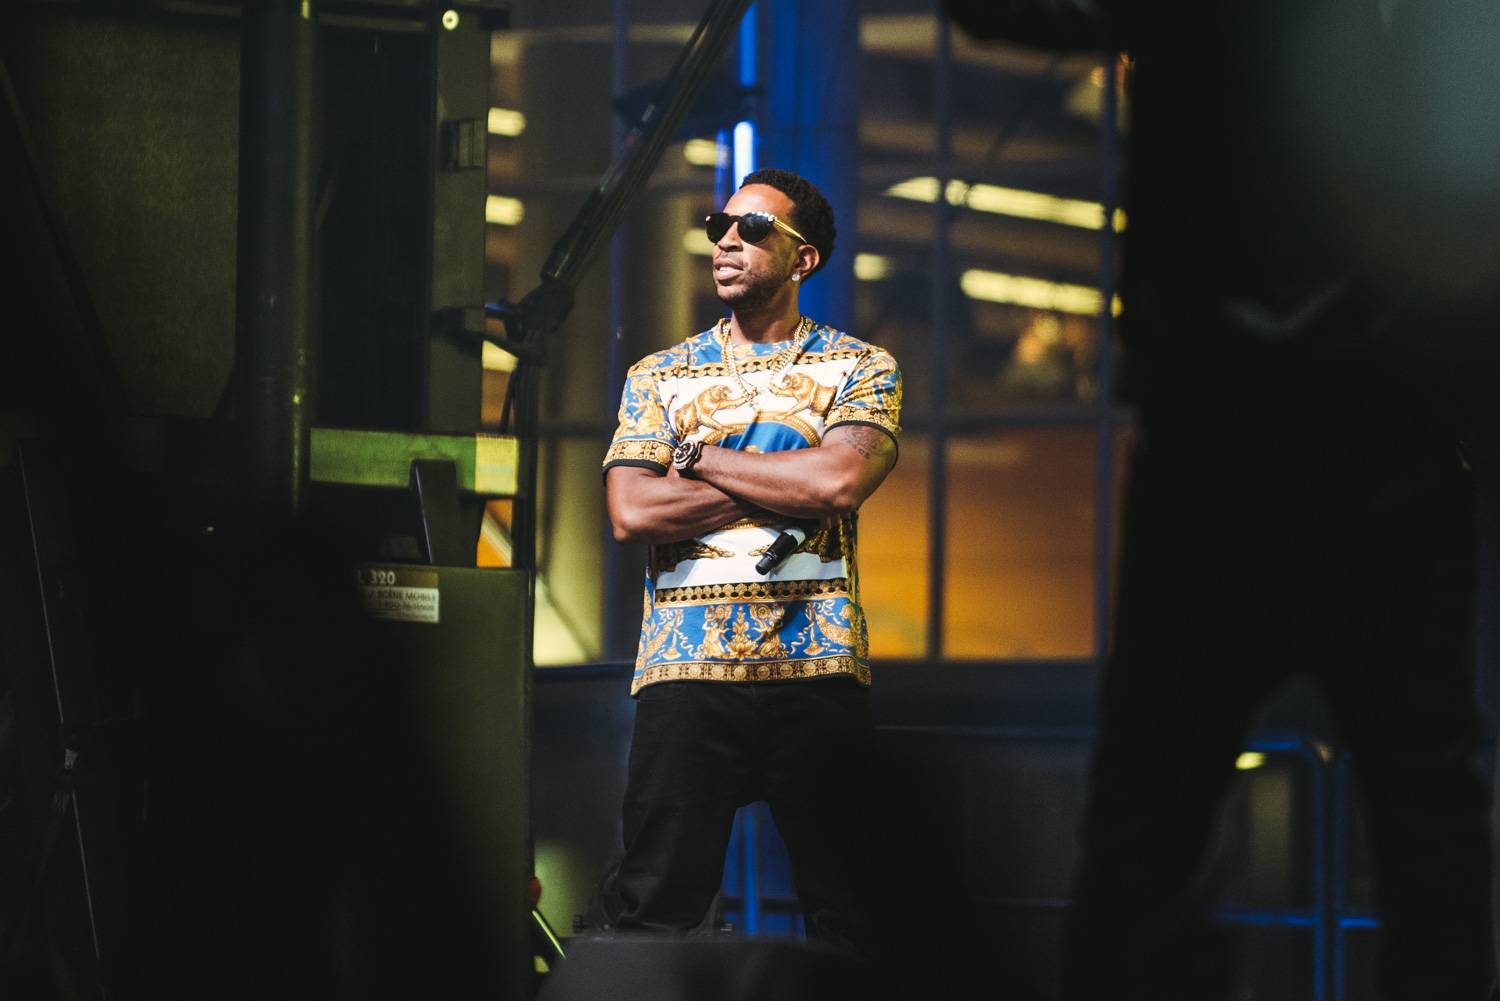 Ludacris at the Bumbershoot Music Festival 2018 - Day1. Aug 31 2018. Pavel Boiko photo.